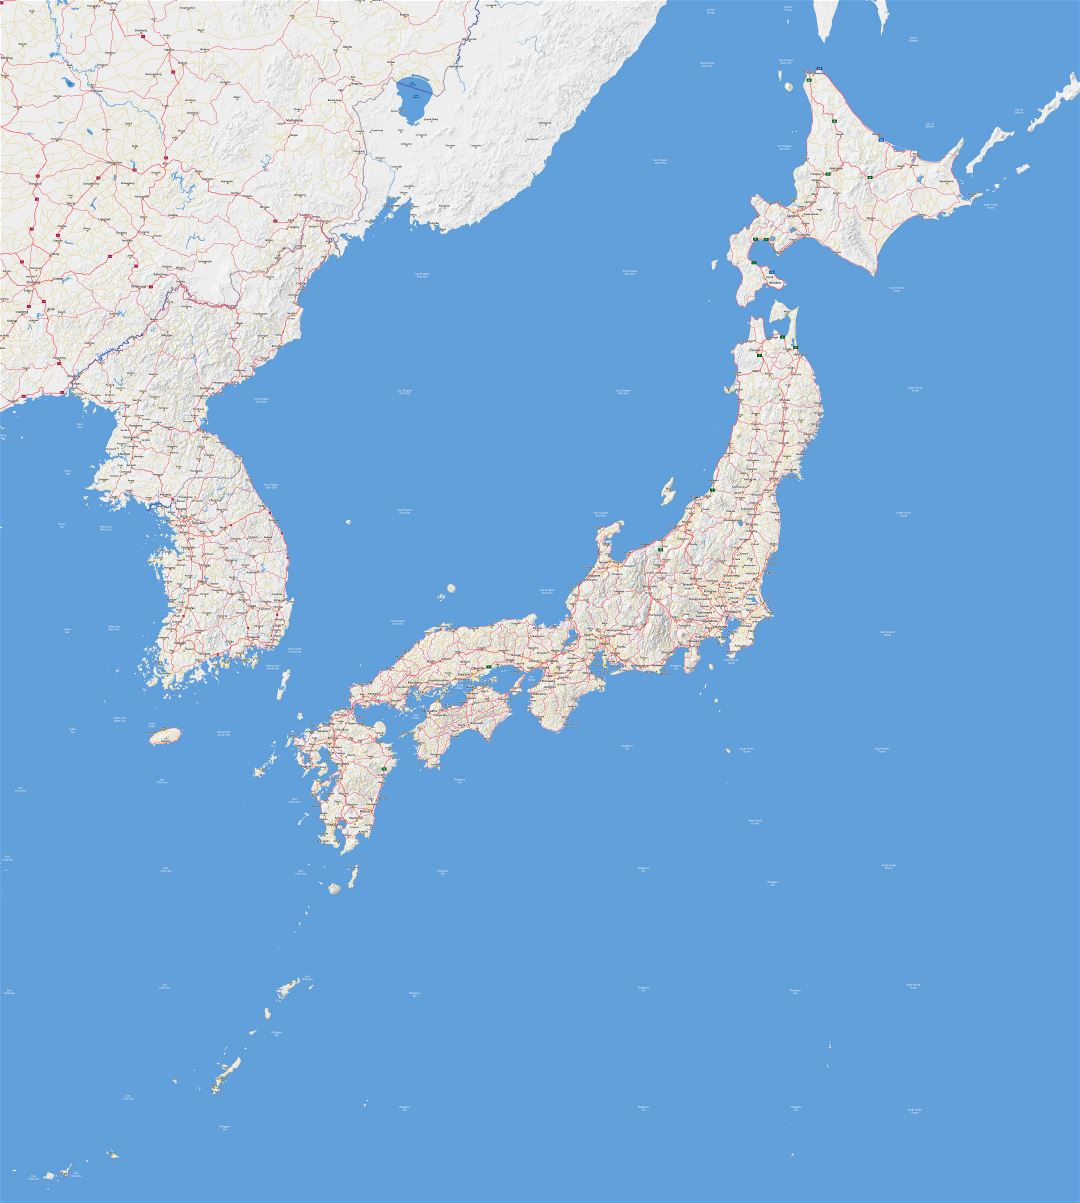 Large scale road map of Japan with relief and all cities